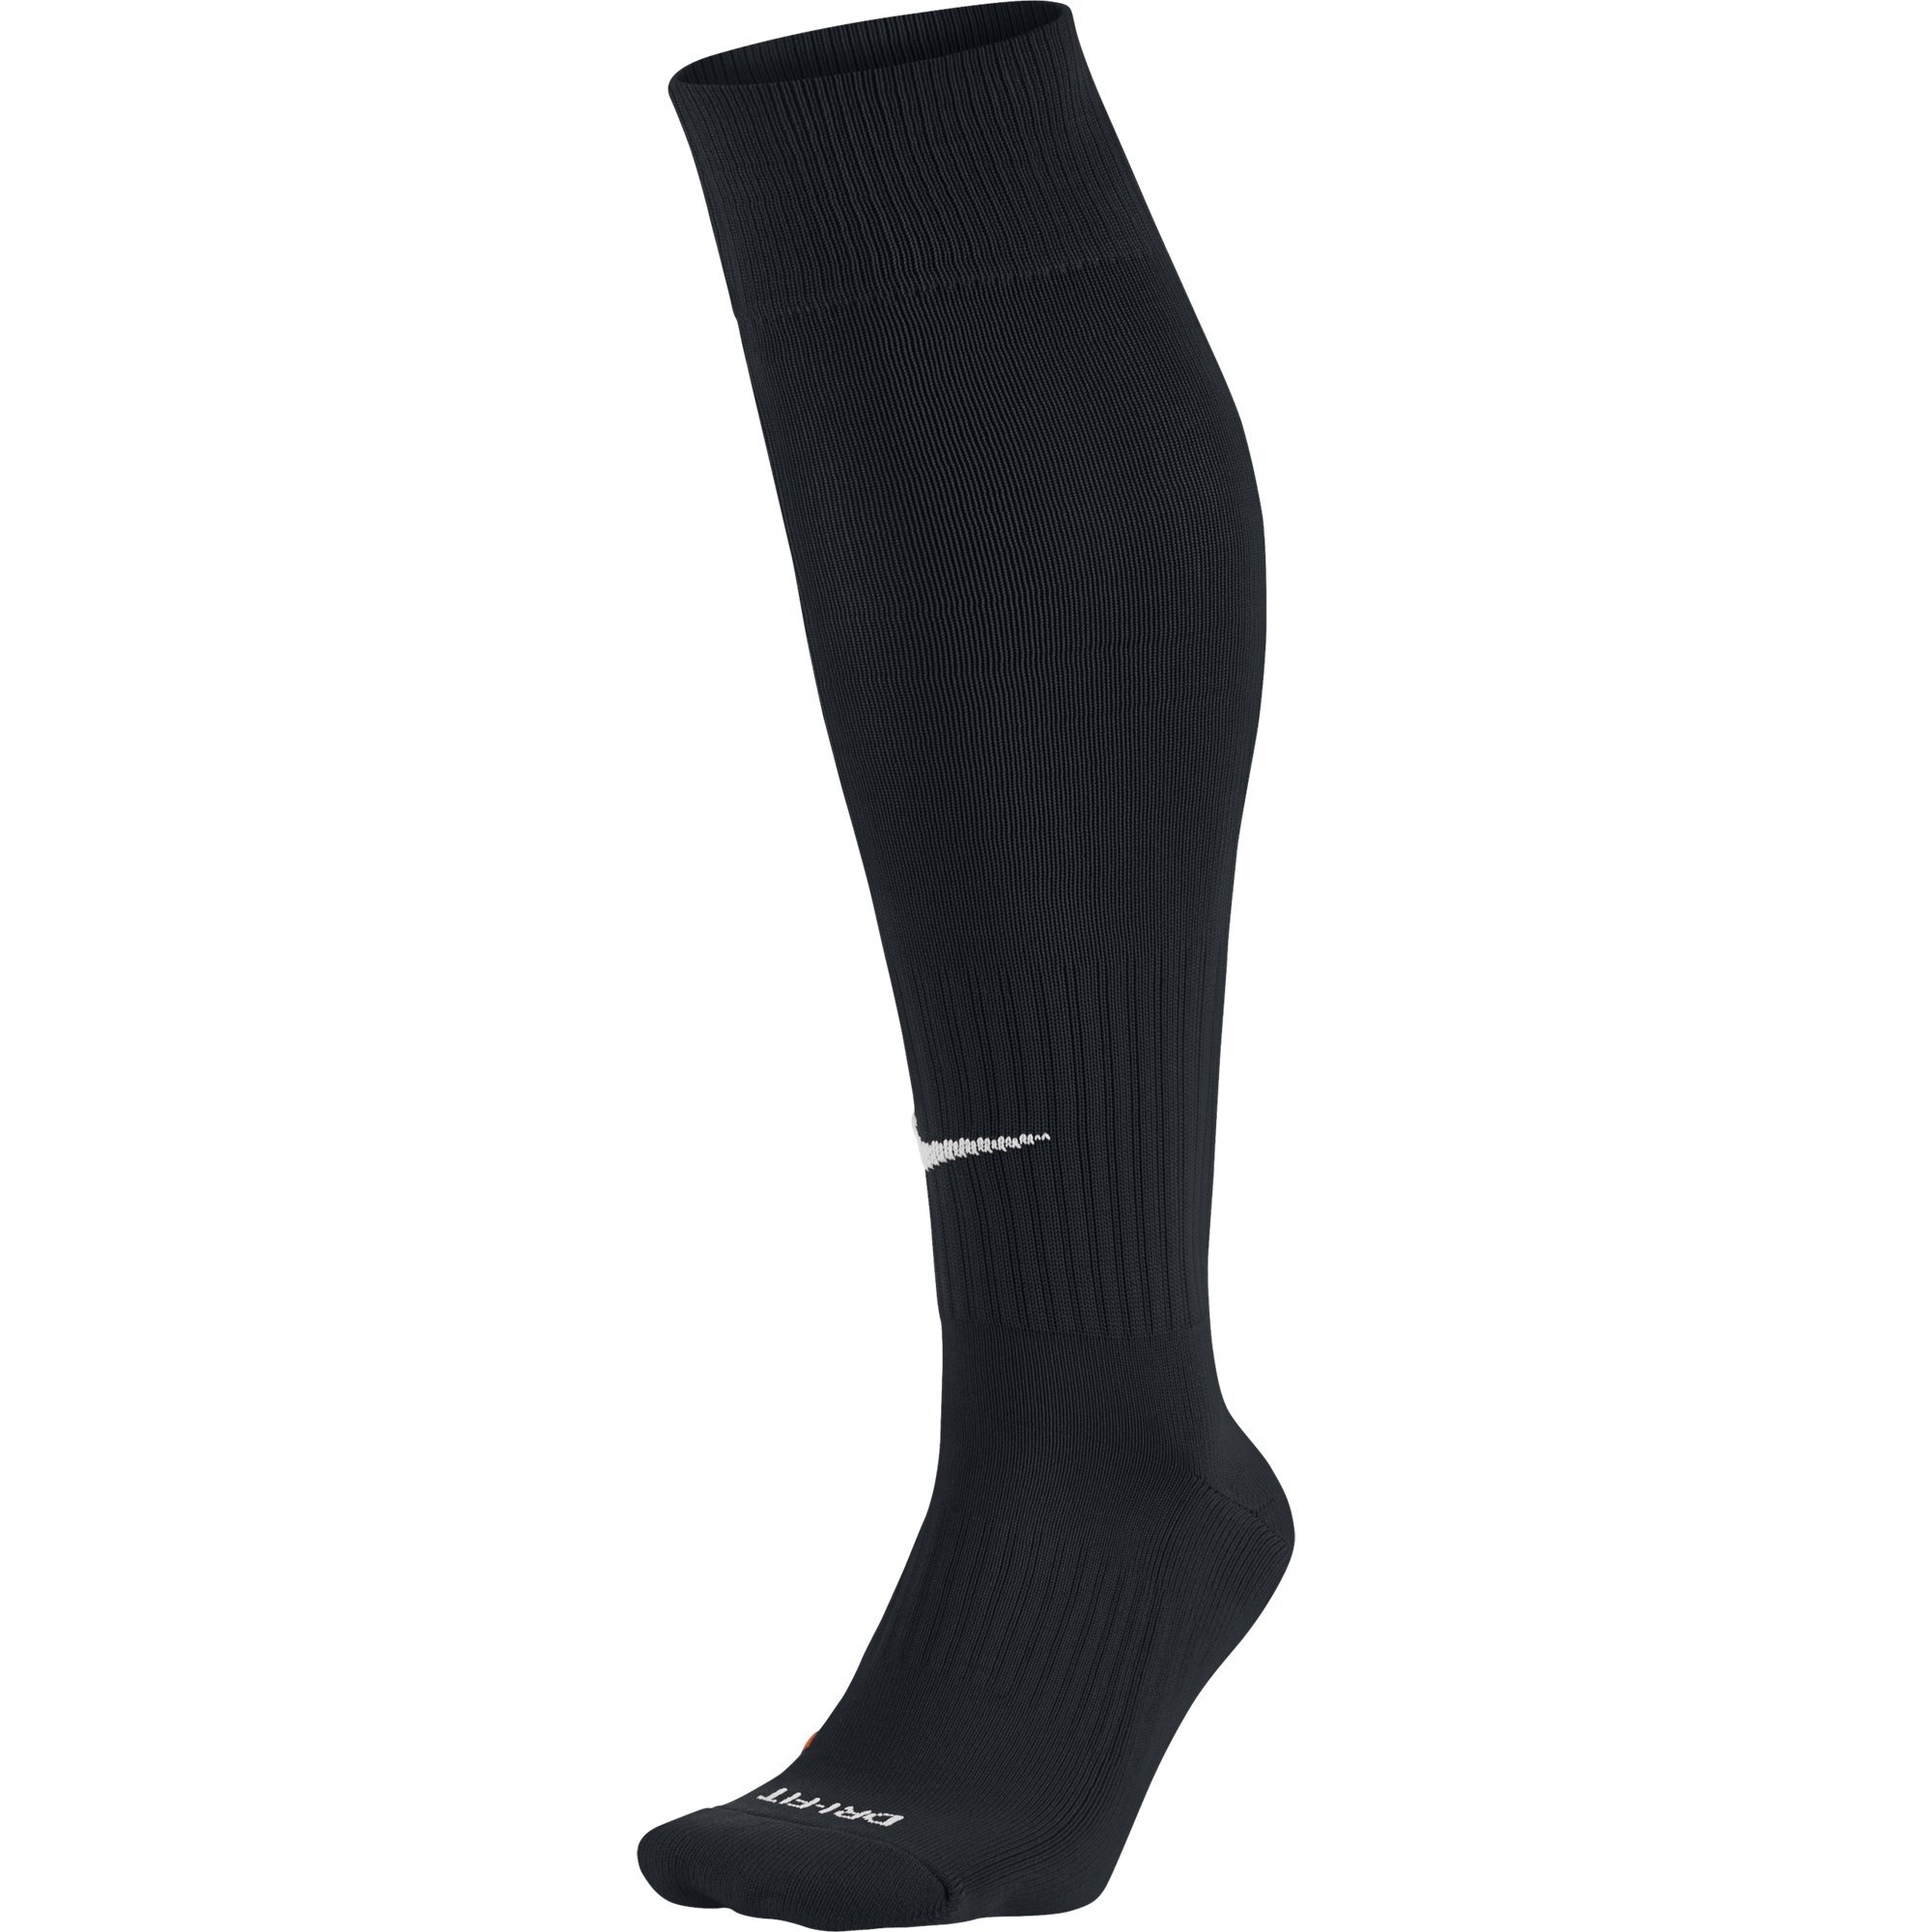 49ed7b8ed8 Nike Unisex Classic Football Dri-Fit Knee High Football Socks product image